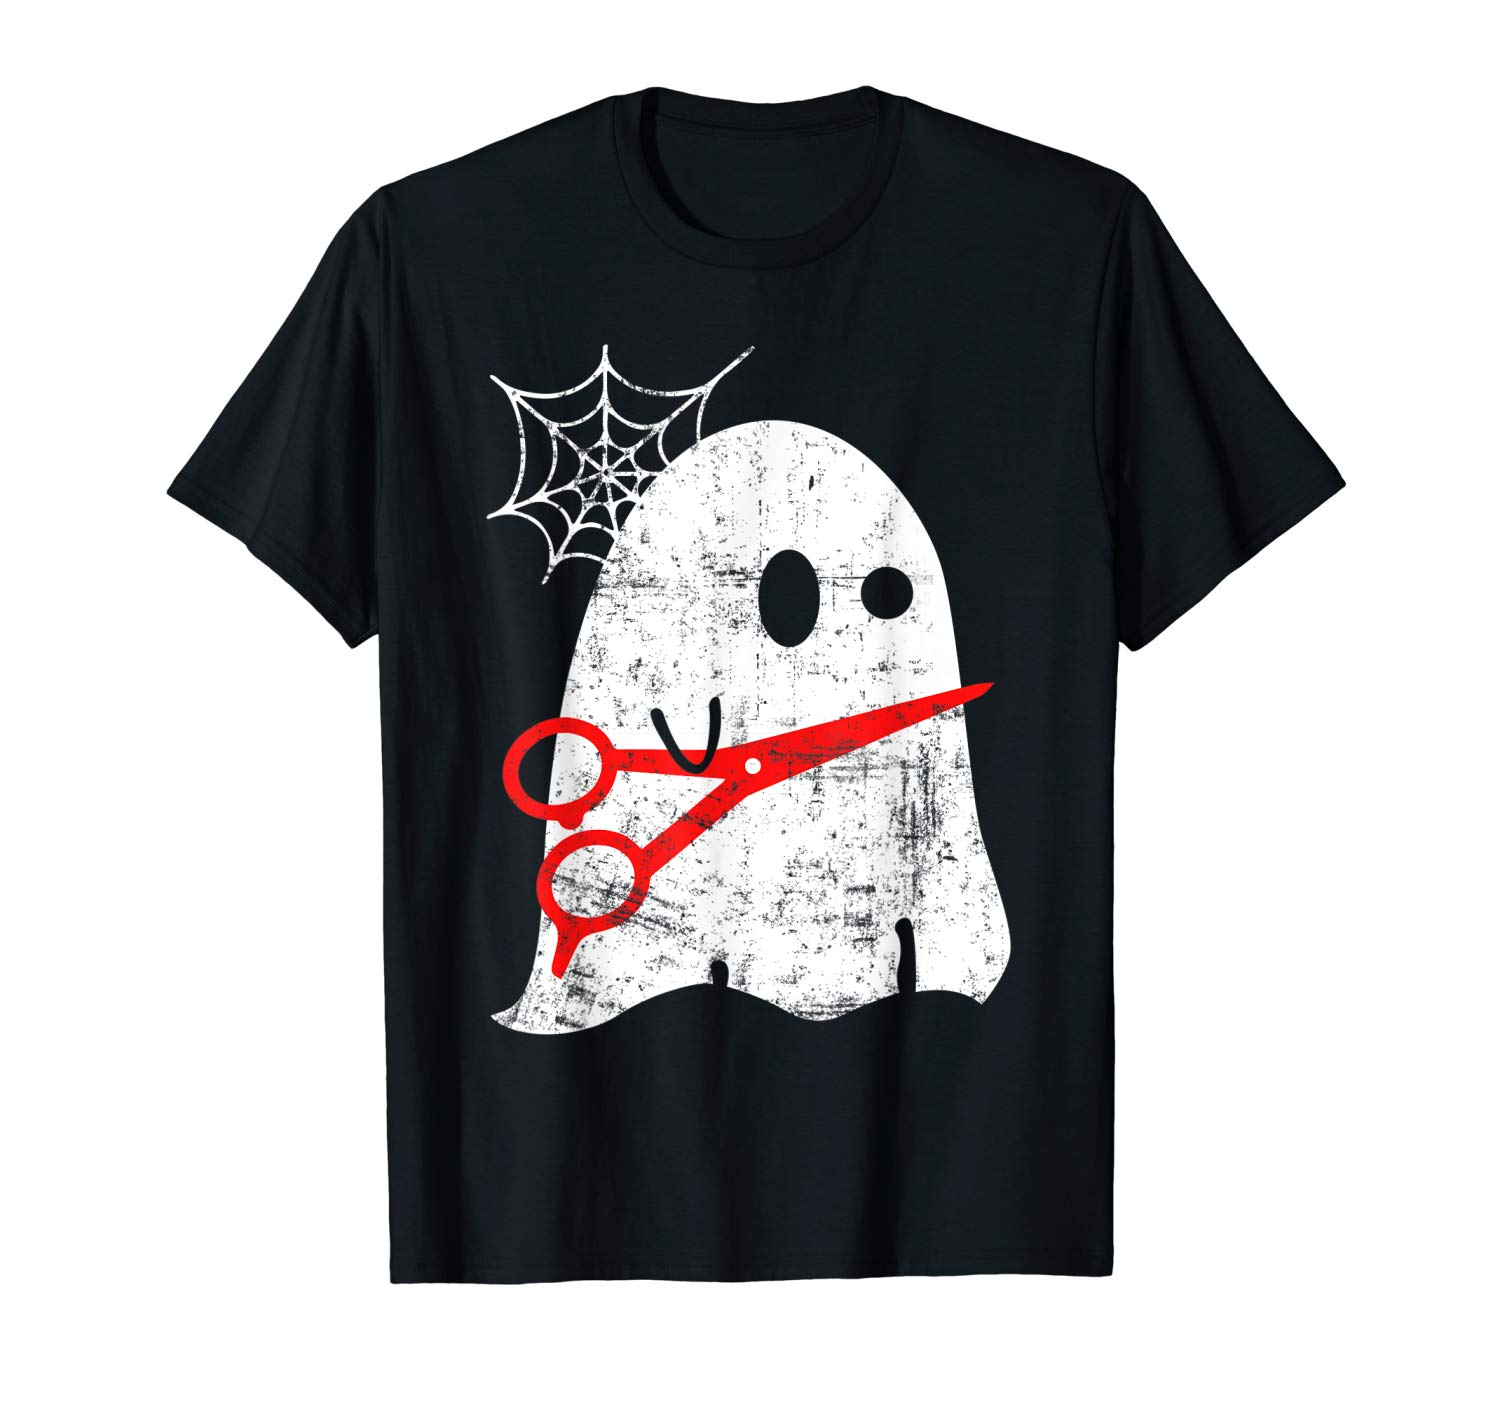 Hairstylist Halloween Ghost With A Scissors Shirt